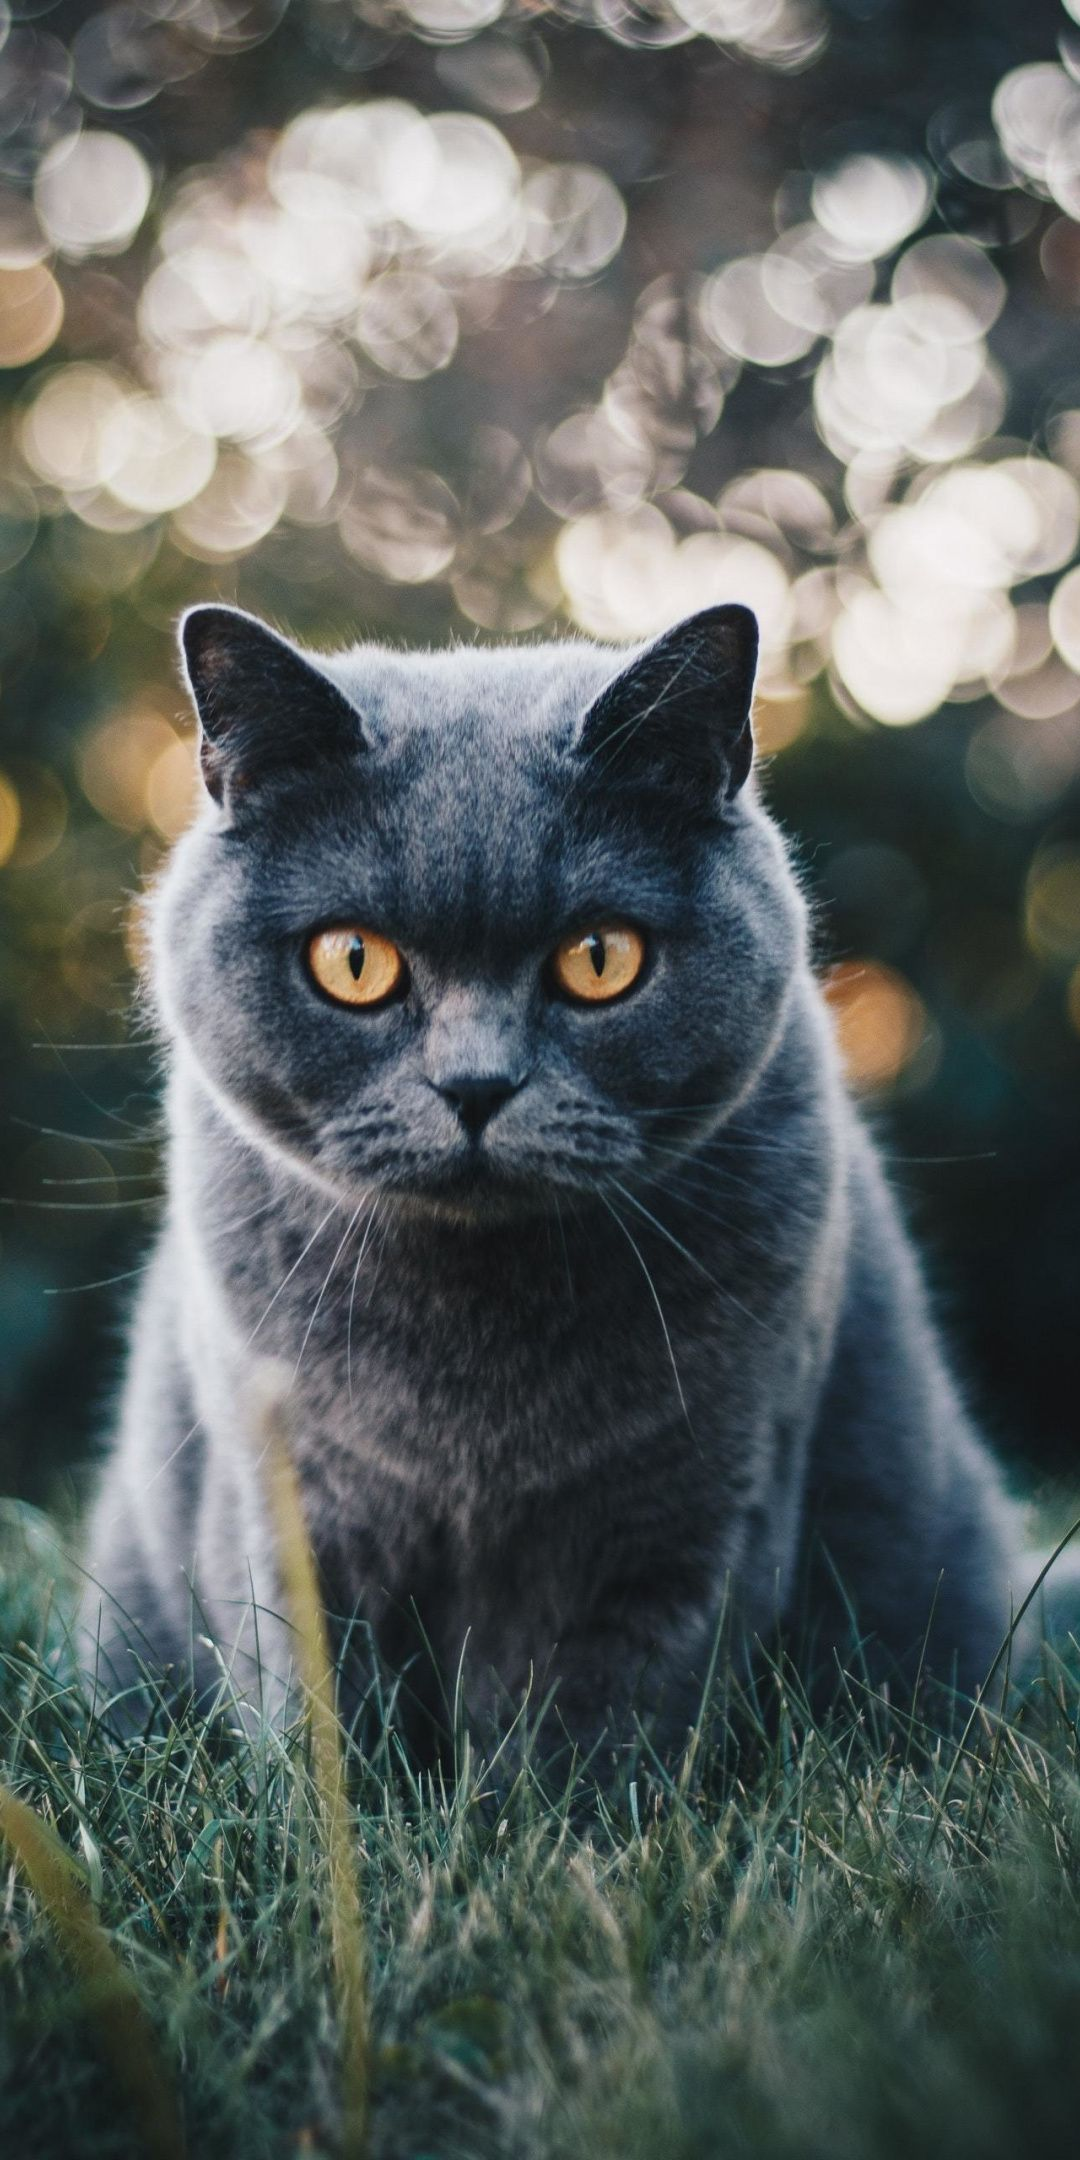 Black Cat Curious Stare 1080x2160 Wallpaper Cat Adoption Cat Breeds Cat Breeds With Pictures